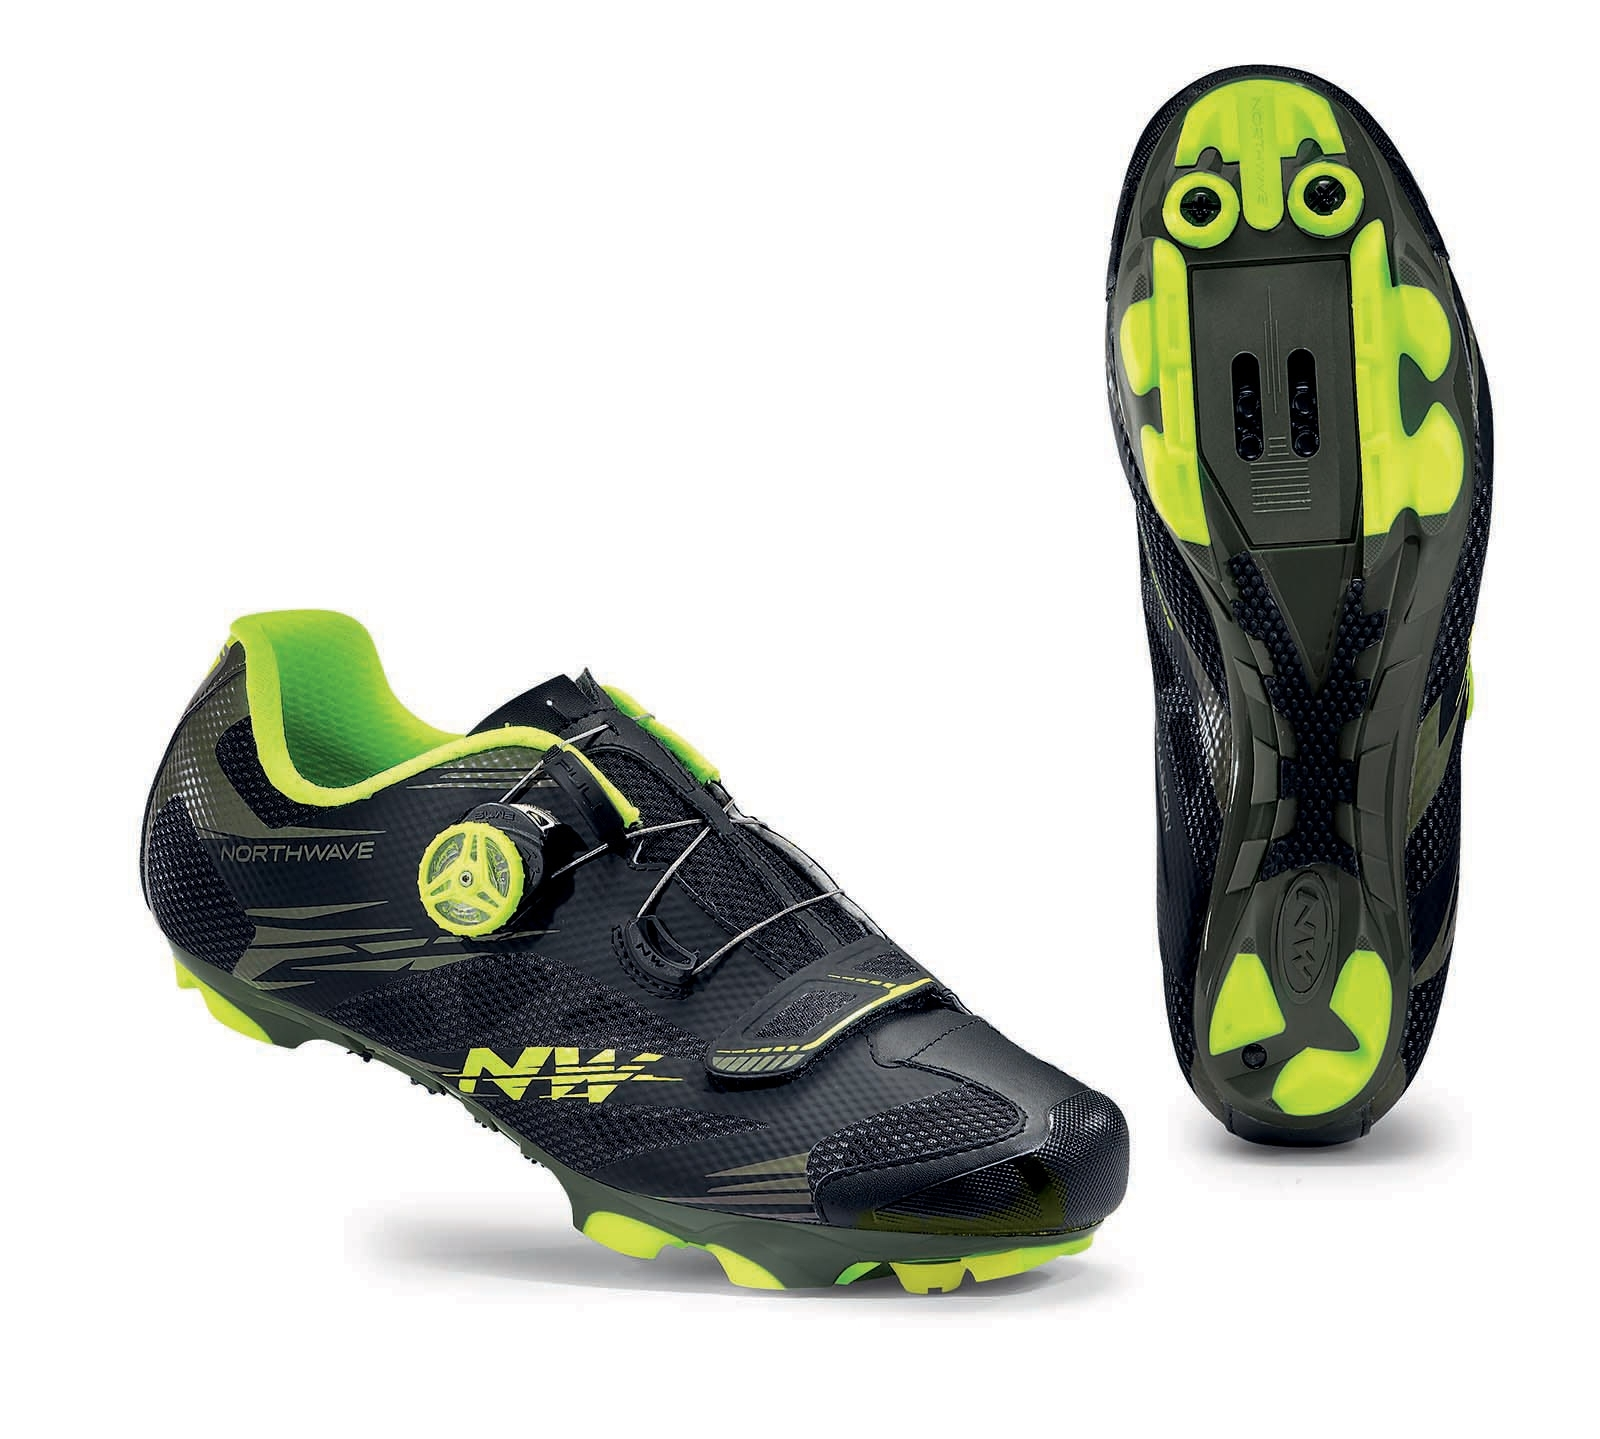 NORTHWAVE Man MTB XC shoes SCORPIUS 2 PLUS black military/yellow fluo